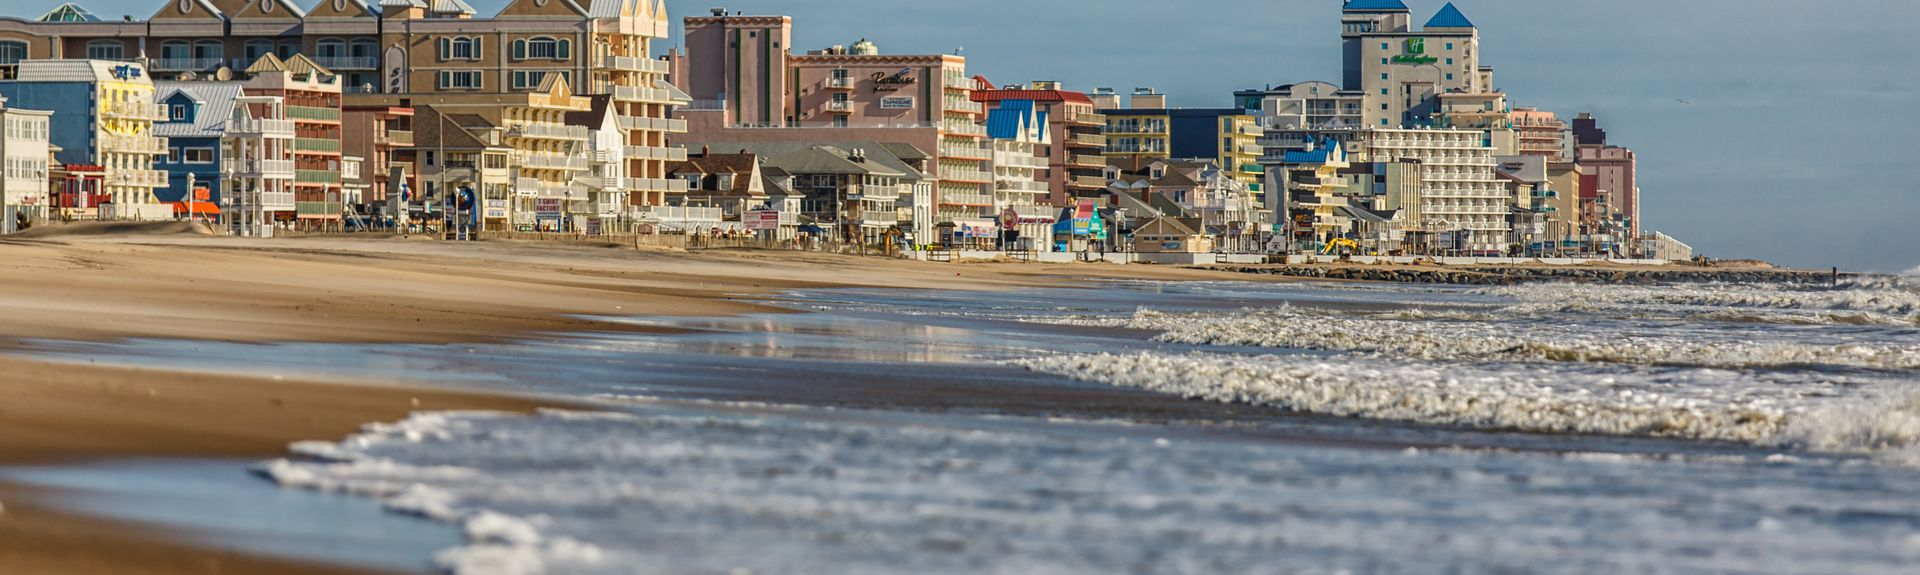 Ocean City, Maryland, Estados Unidos